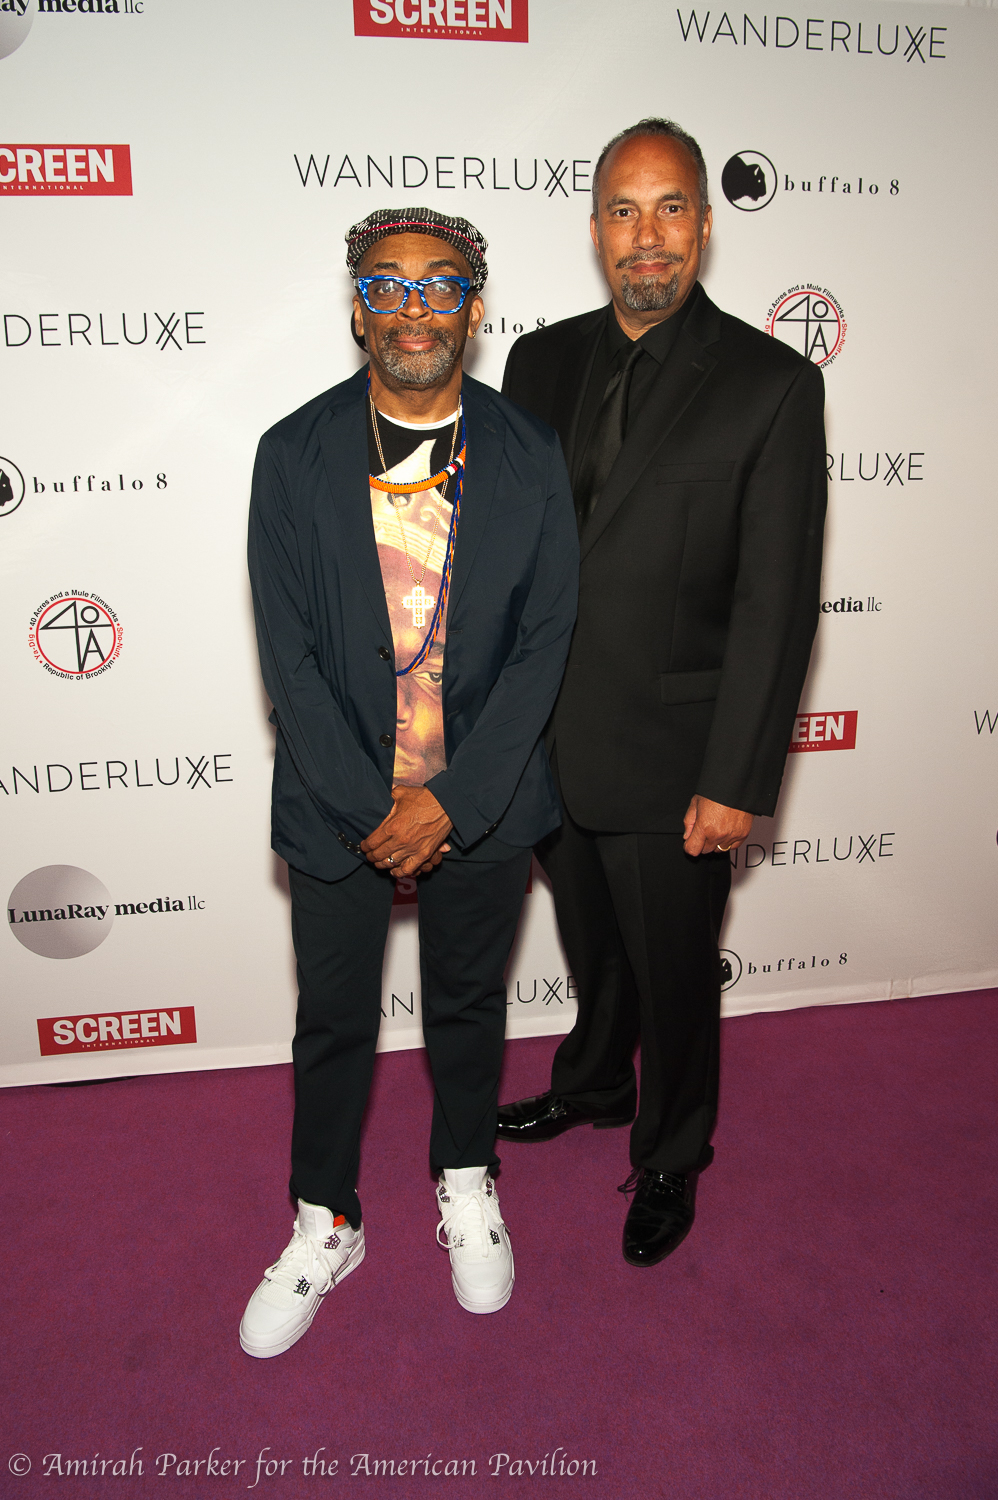 Wanderluxxe Red Carpet 008.jpg